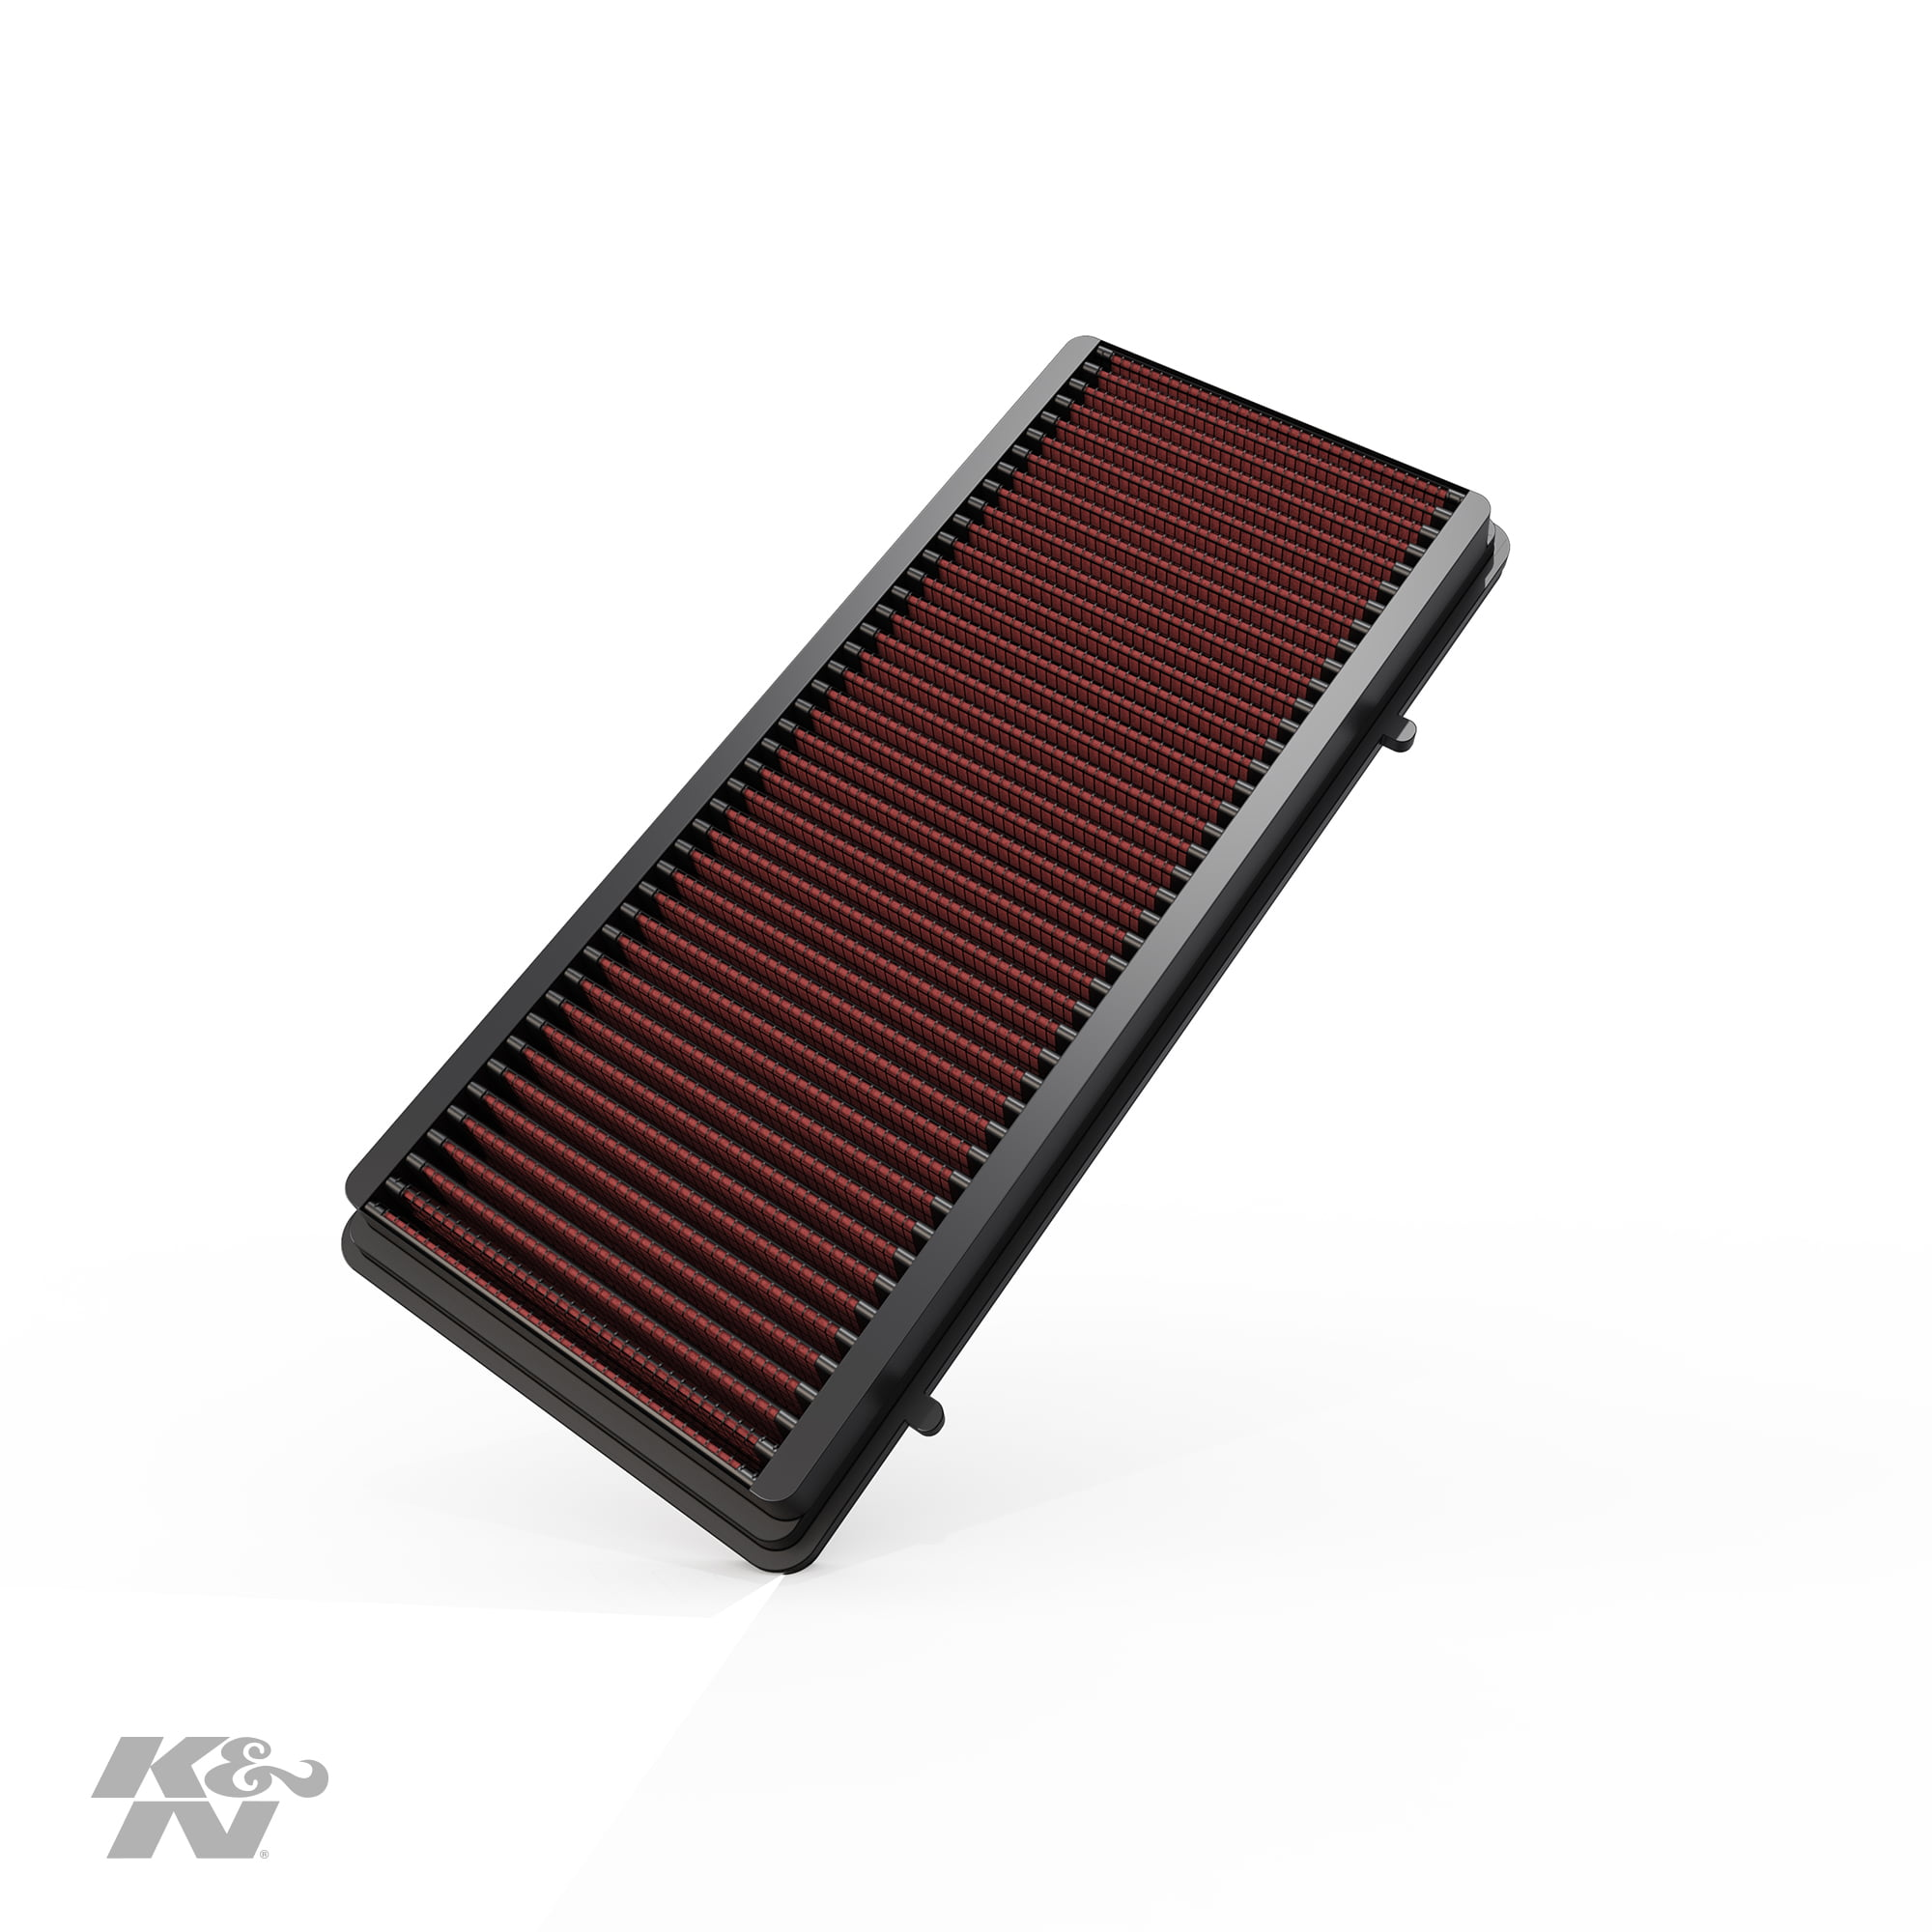 K N Engine Air Filter High Performance Premium Washable Replacement Filter 2007 2014 Nissan Murano Altima Altime Coupe Altima Hybrid 33 2374 Walmart Com Walmart Com